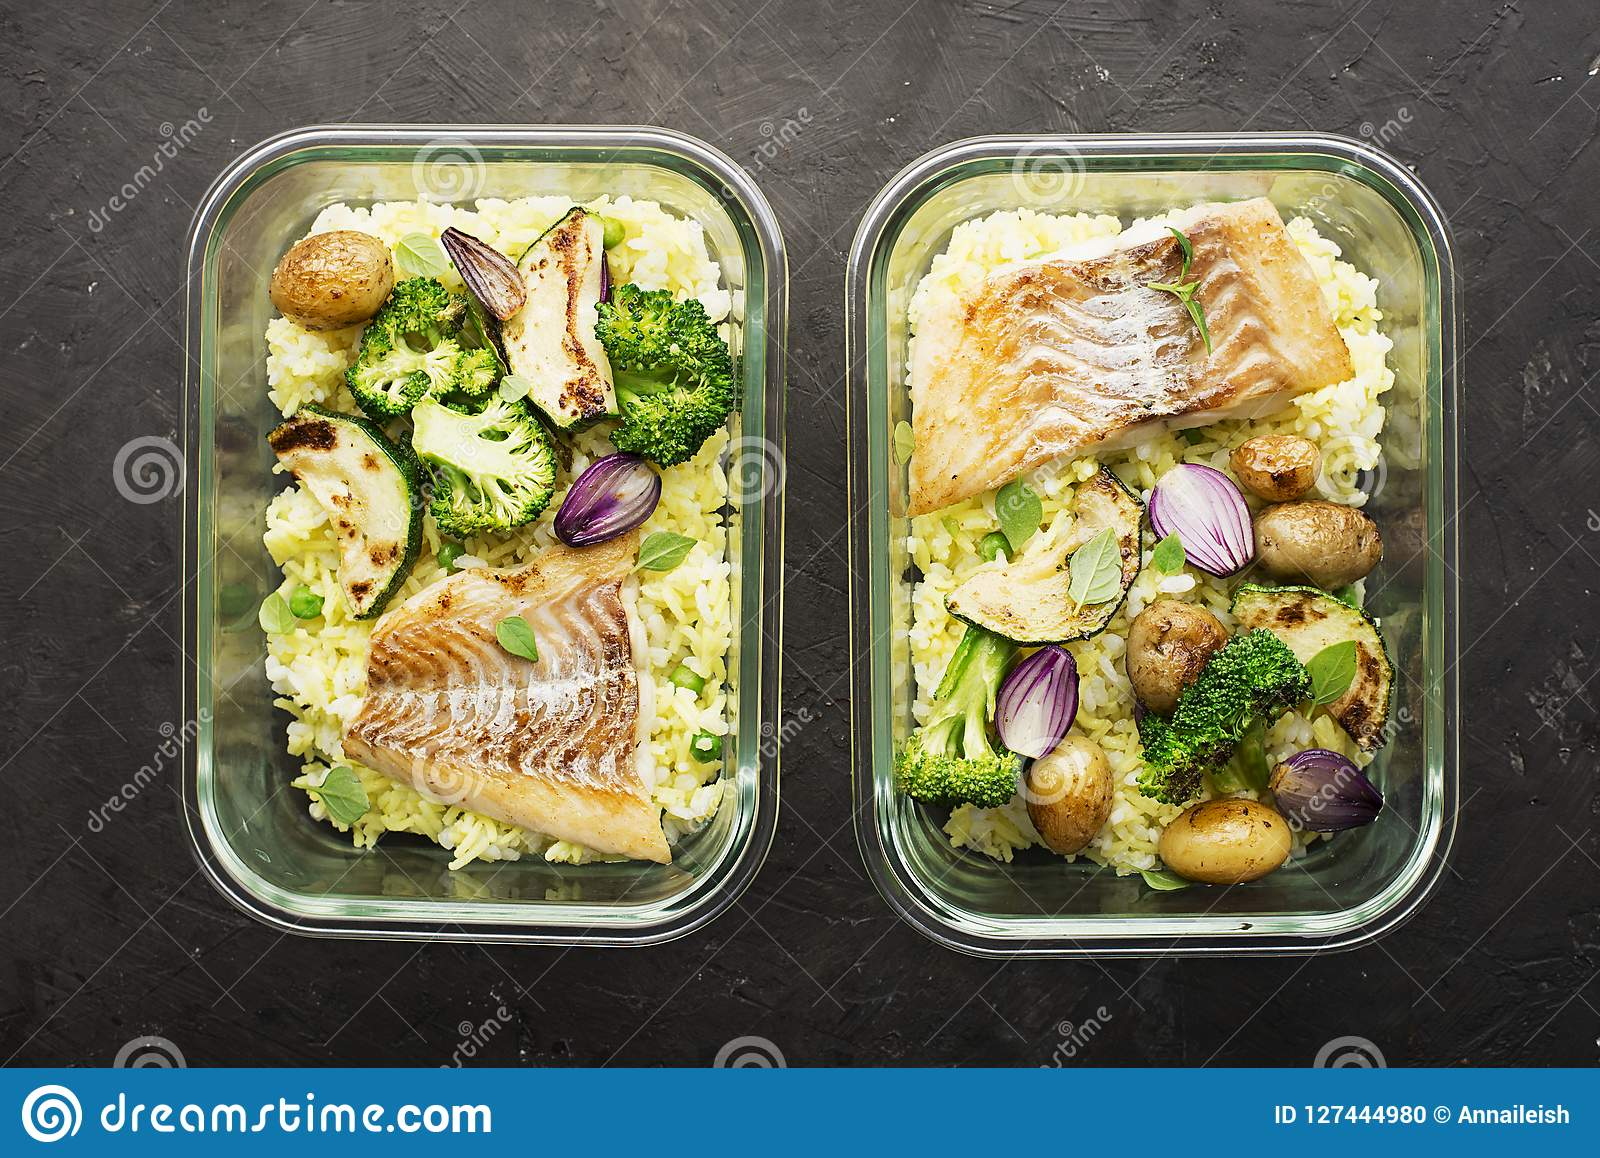 A healthy meal for a snack is a lunch box. Glass containers with fresh steam sea fish, rice with turmeric, fresh